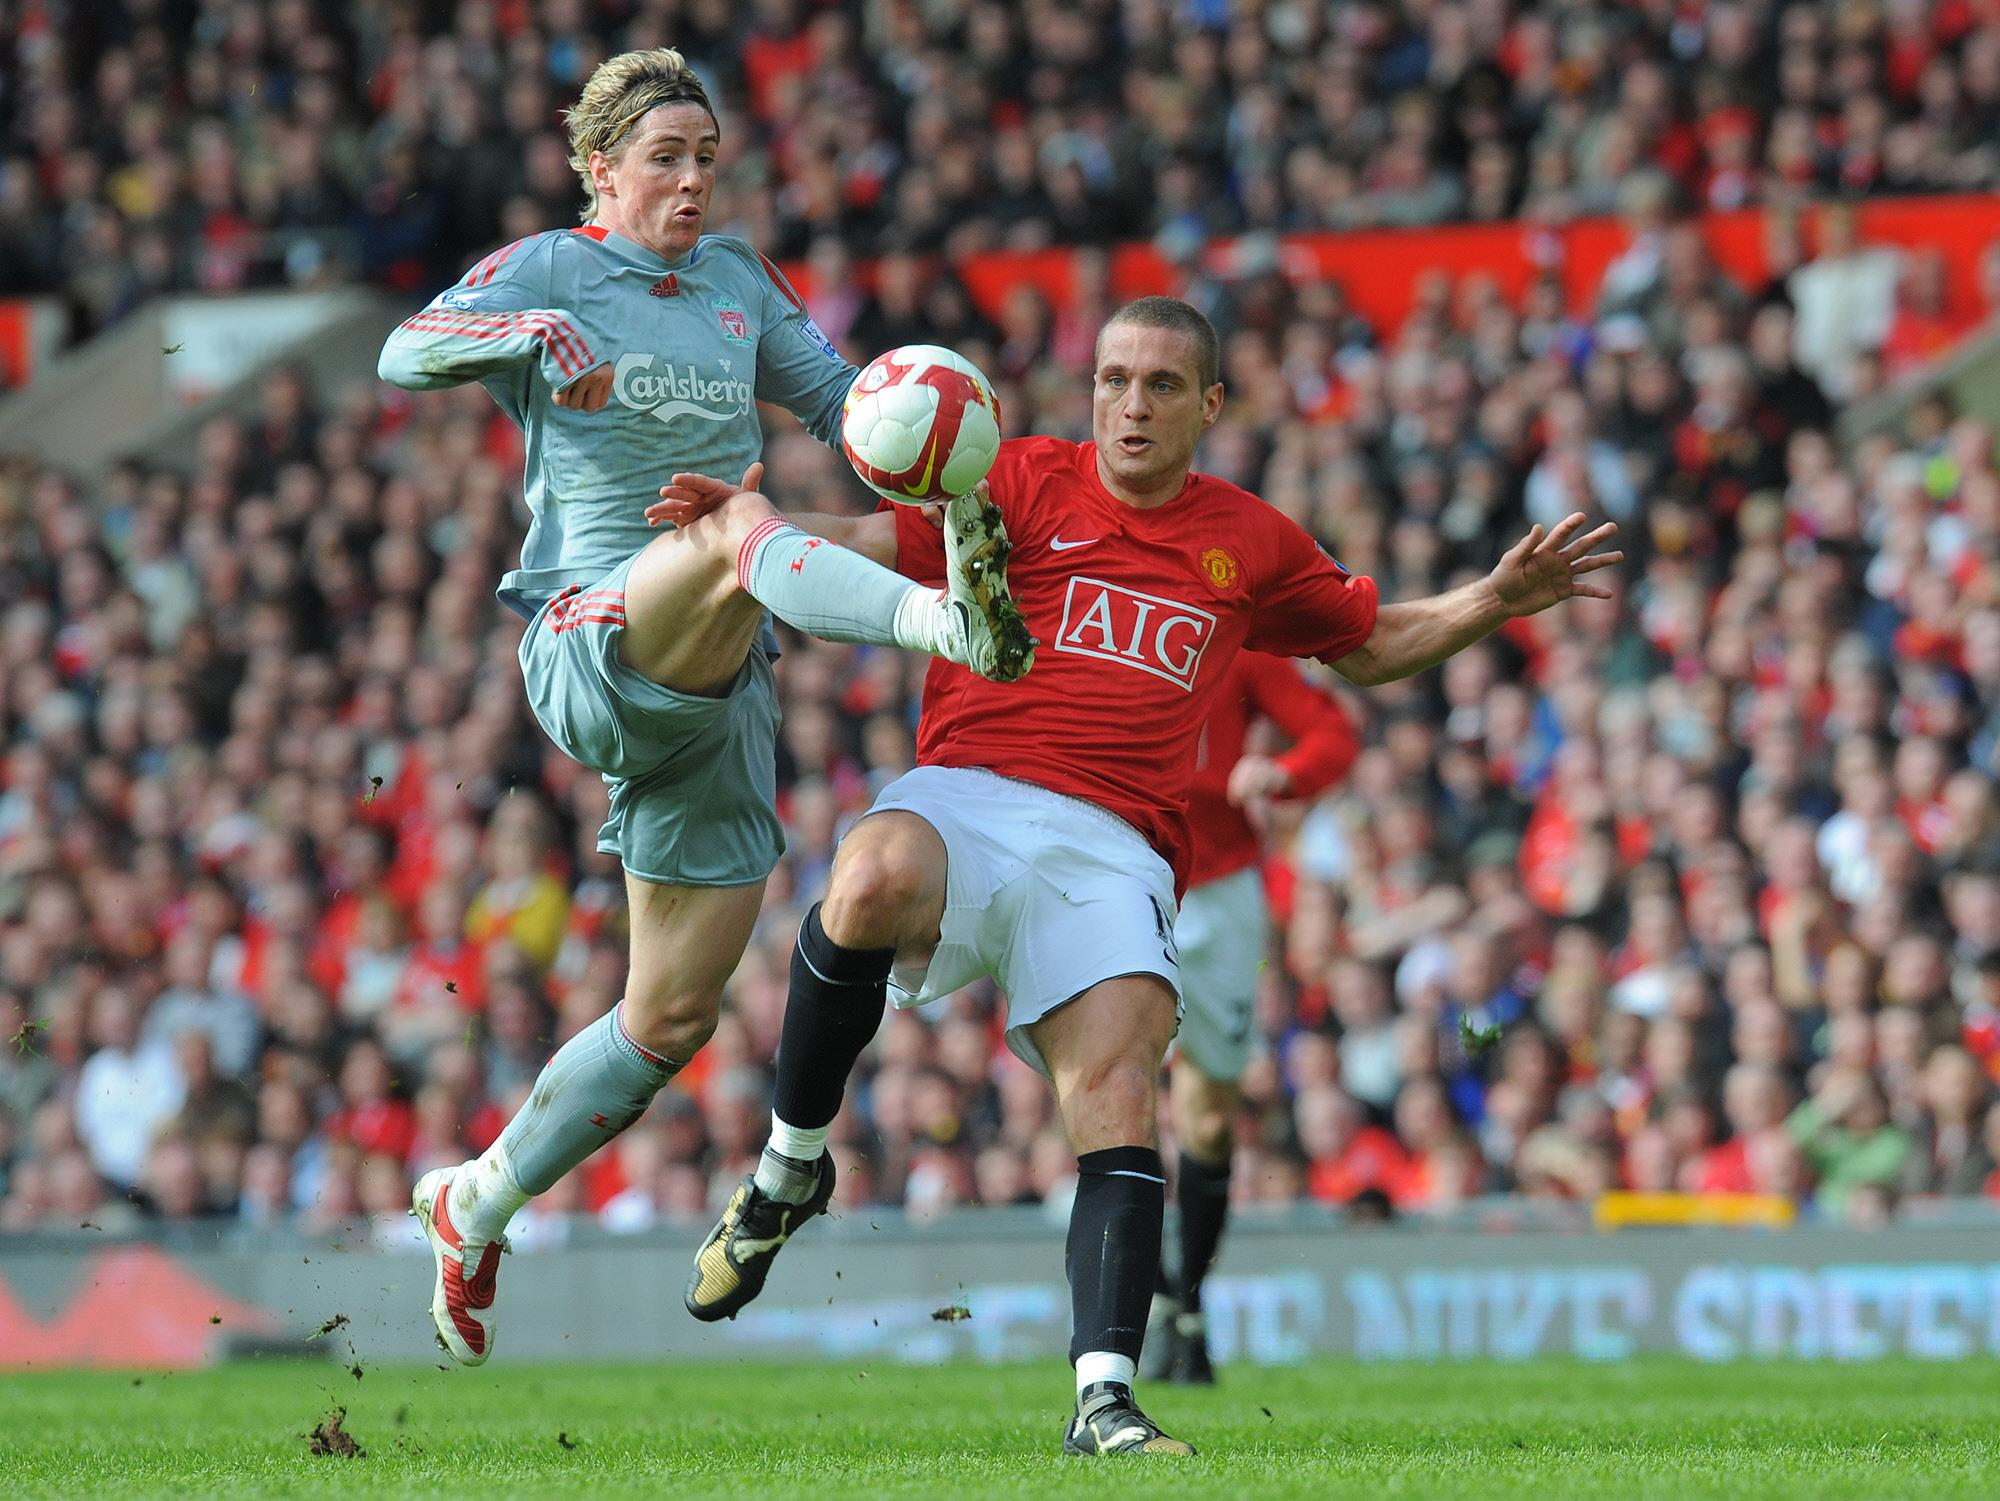 Vidic seemingly hated playing against Torres